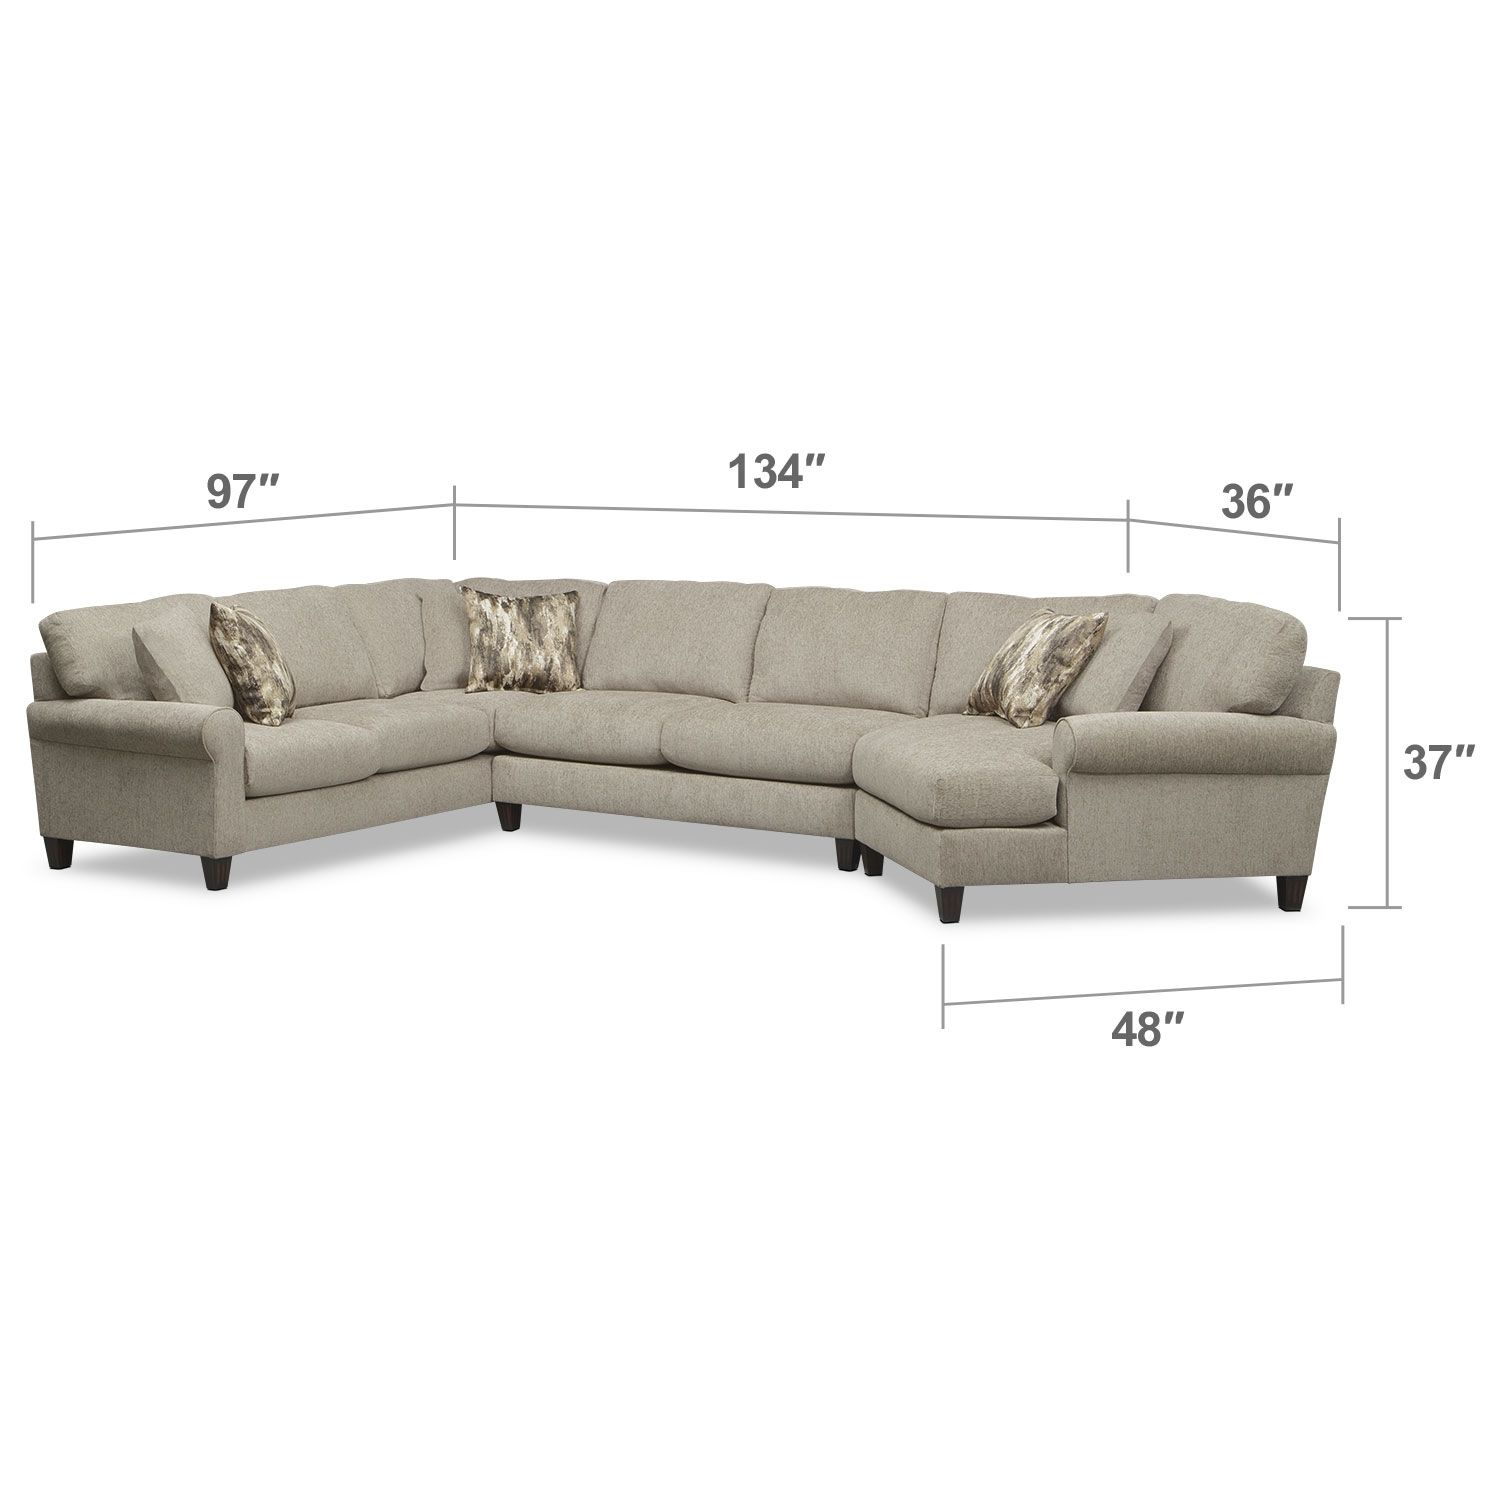 ashley furniture patola park patina 4piece small sectional with left cuddler furniture pinterest small sectional living rooms and room